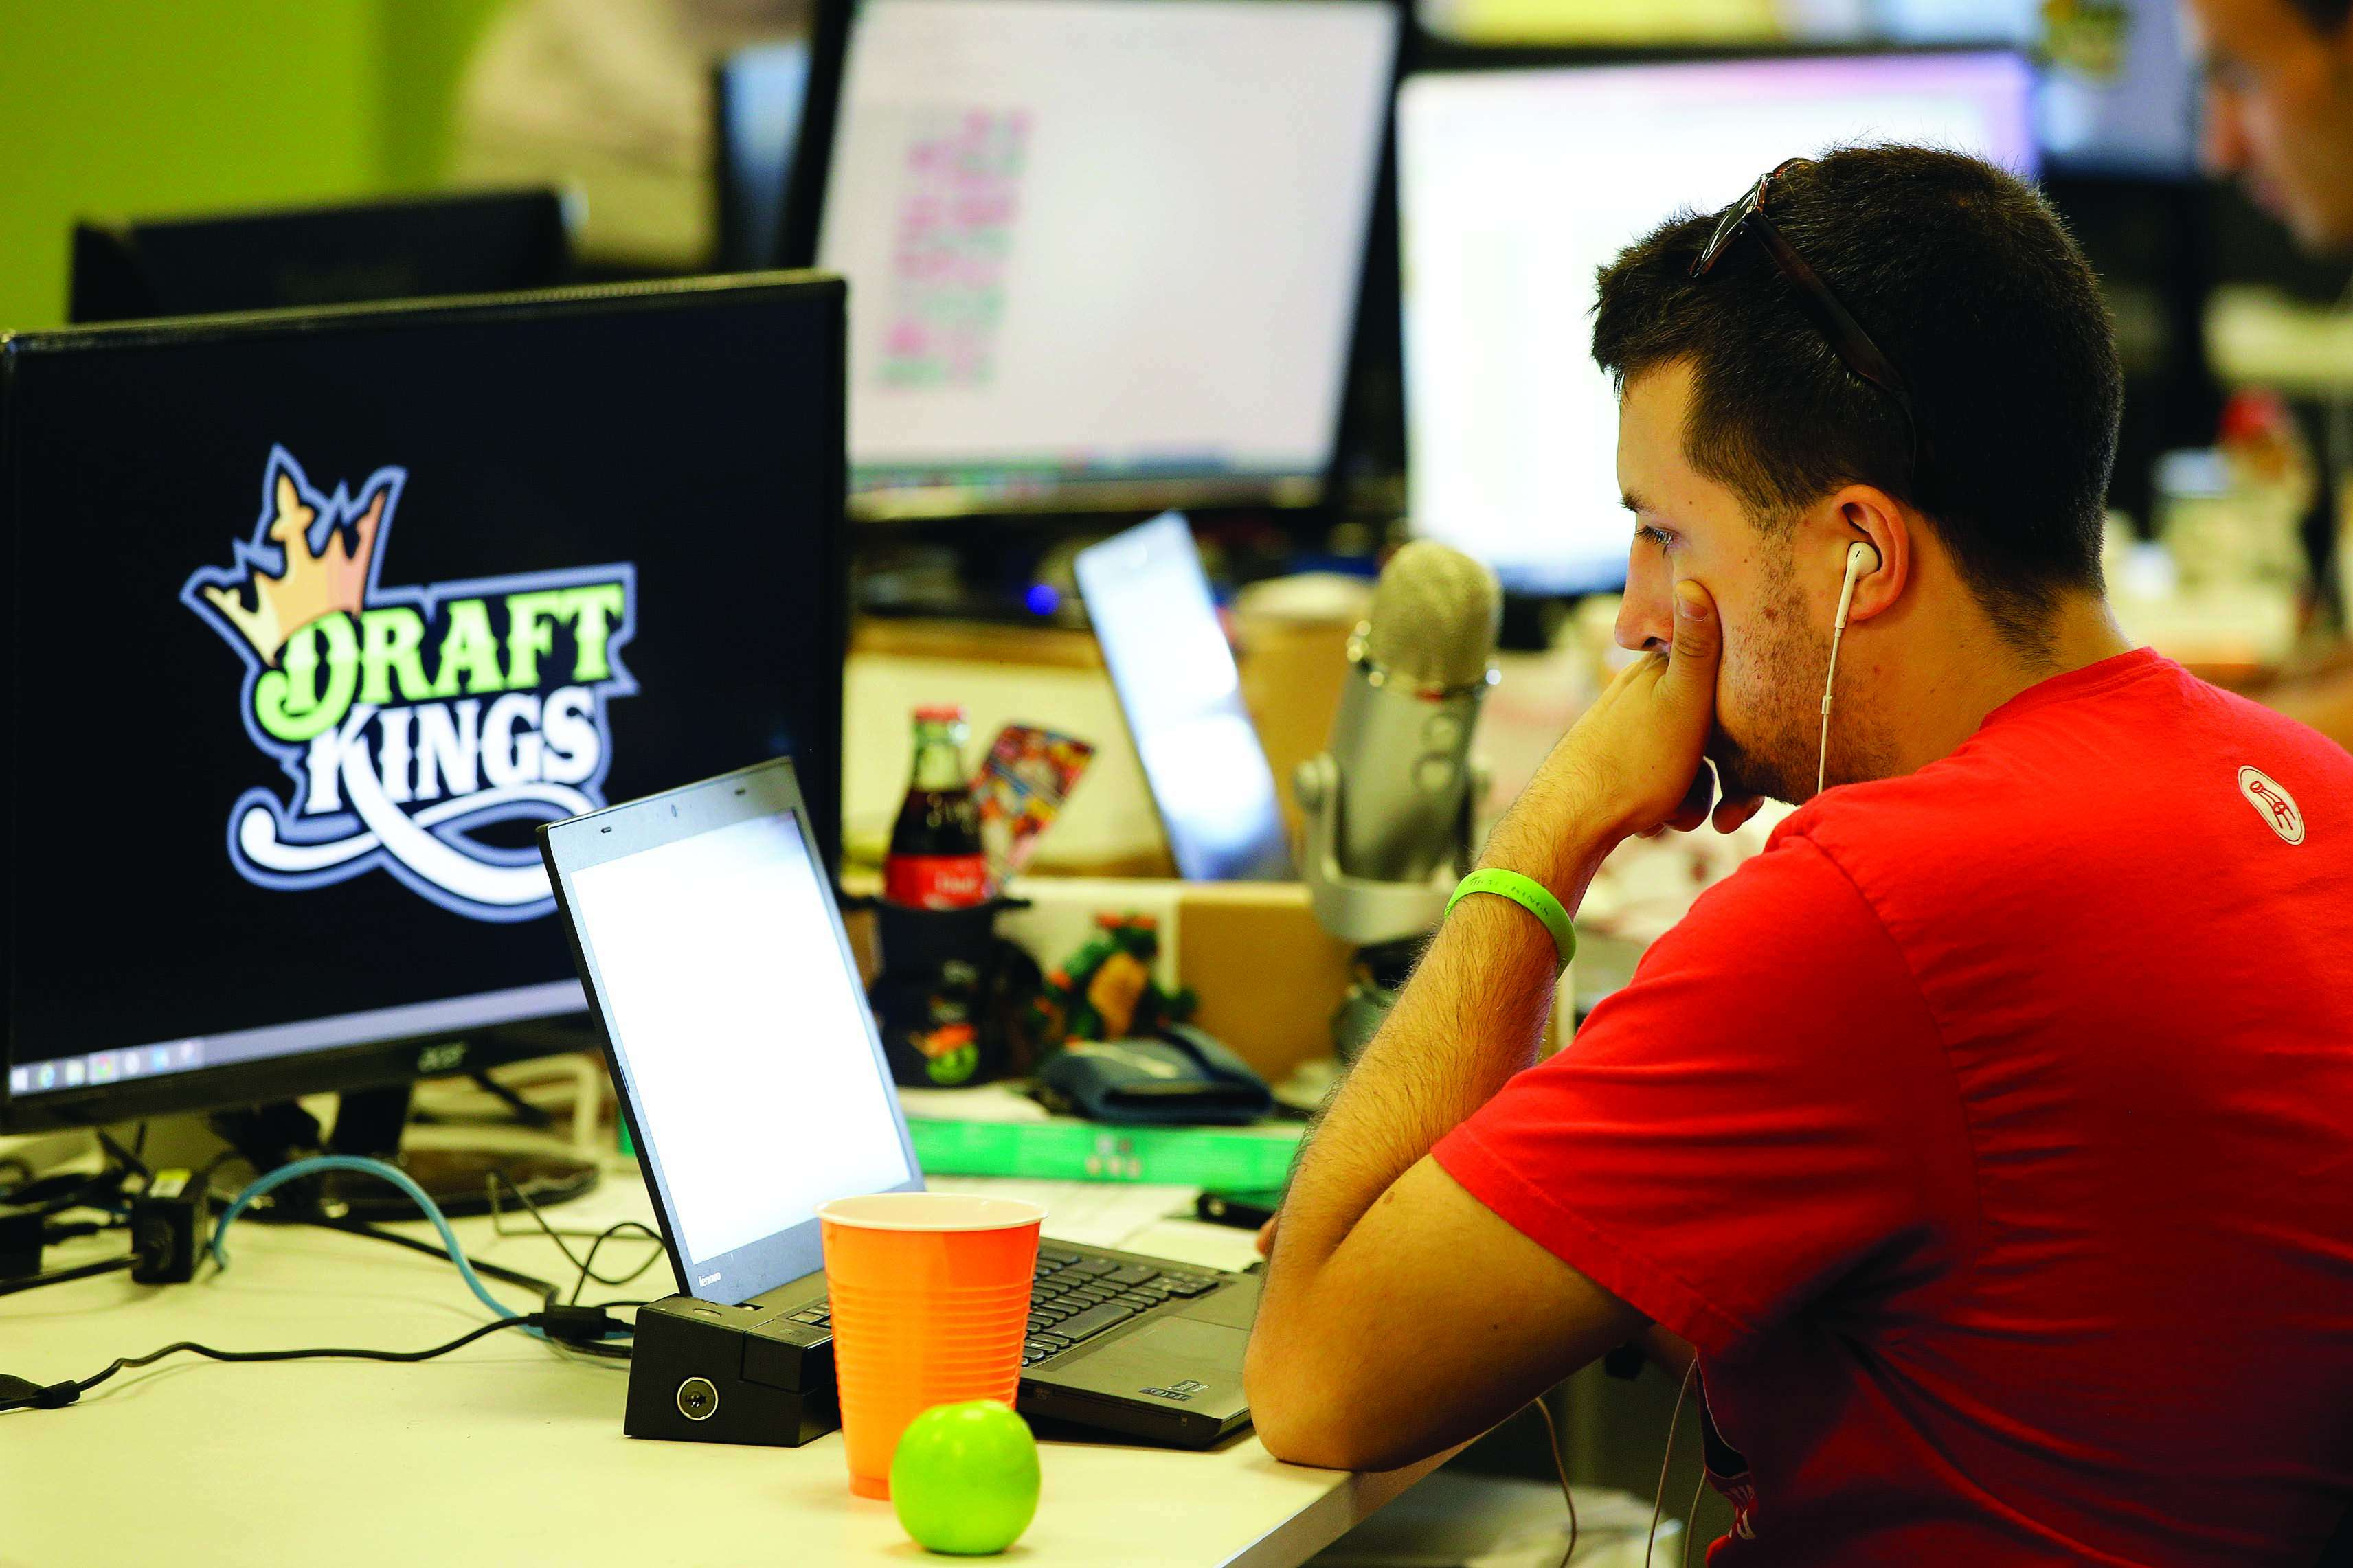 A DraftKings employee